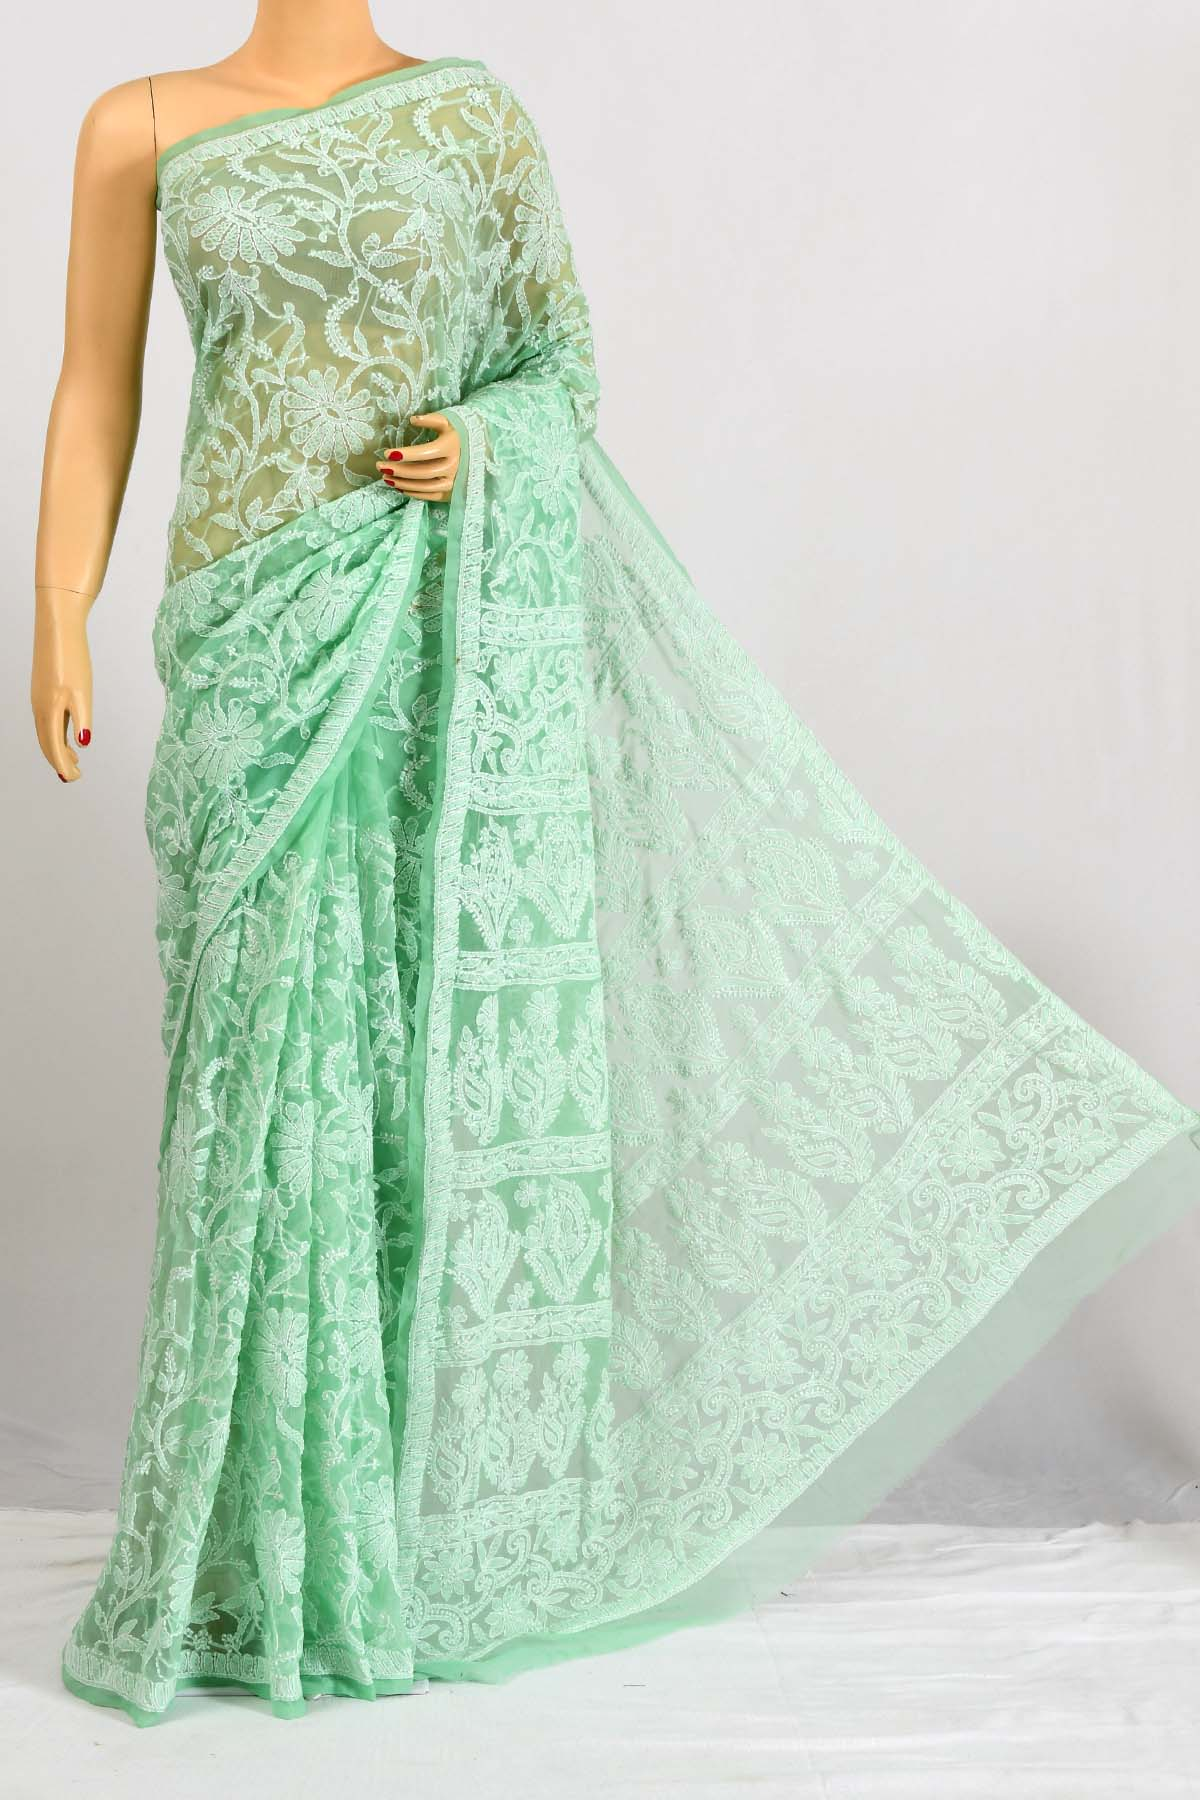 Seagreen Color Hand Embroidered Work Allover Lucknowi Chikankari Saree (With Blouse - Georgette) PU250675